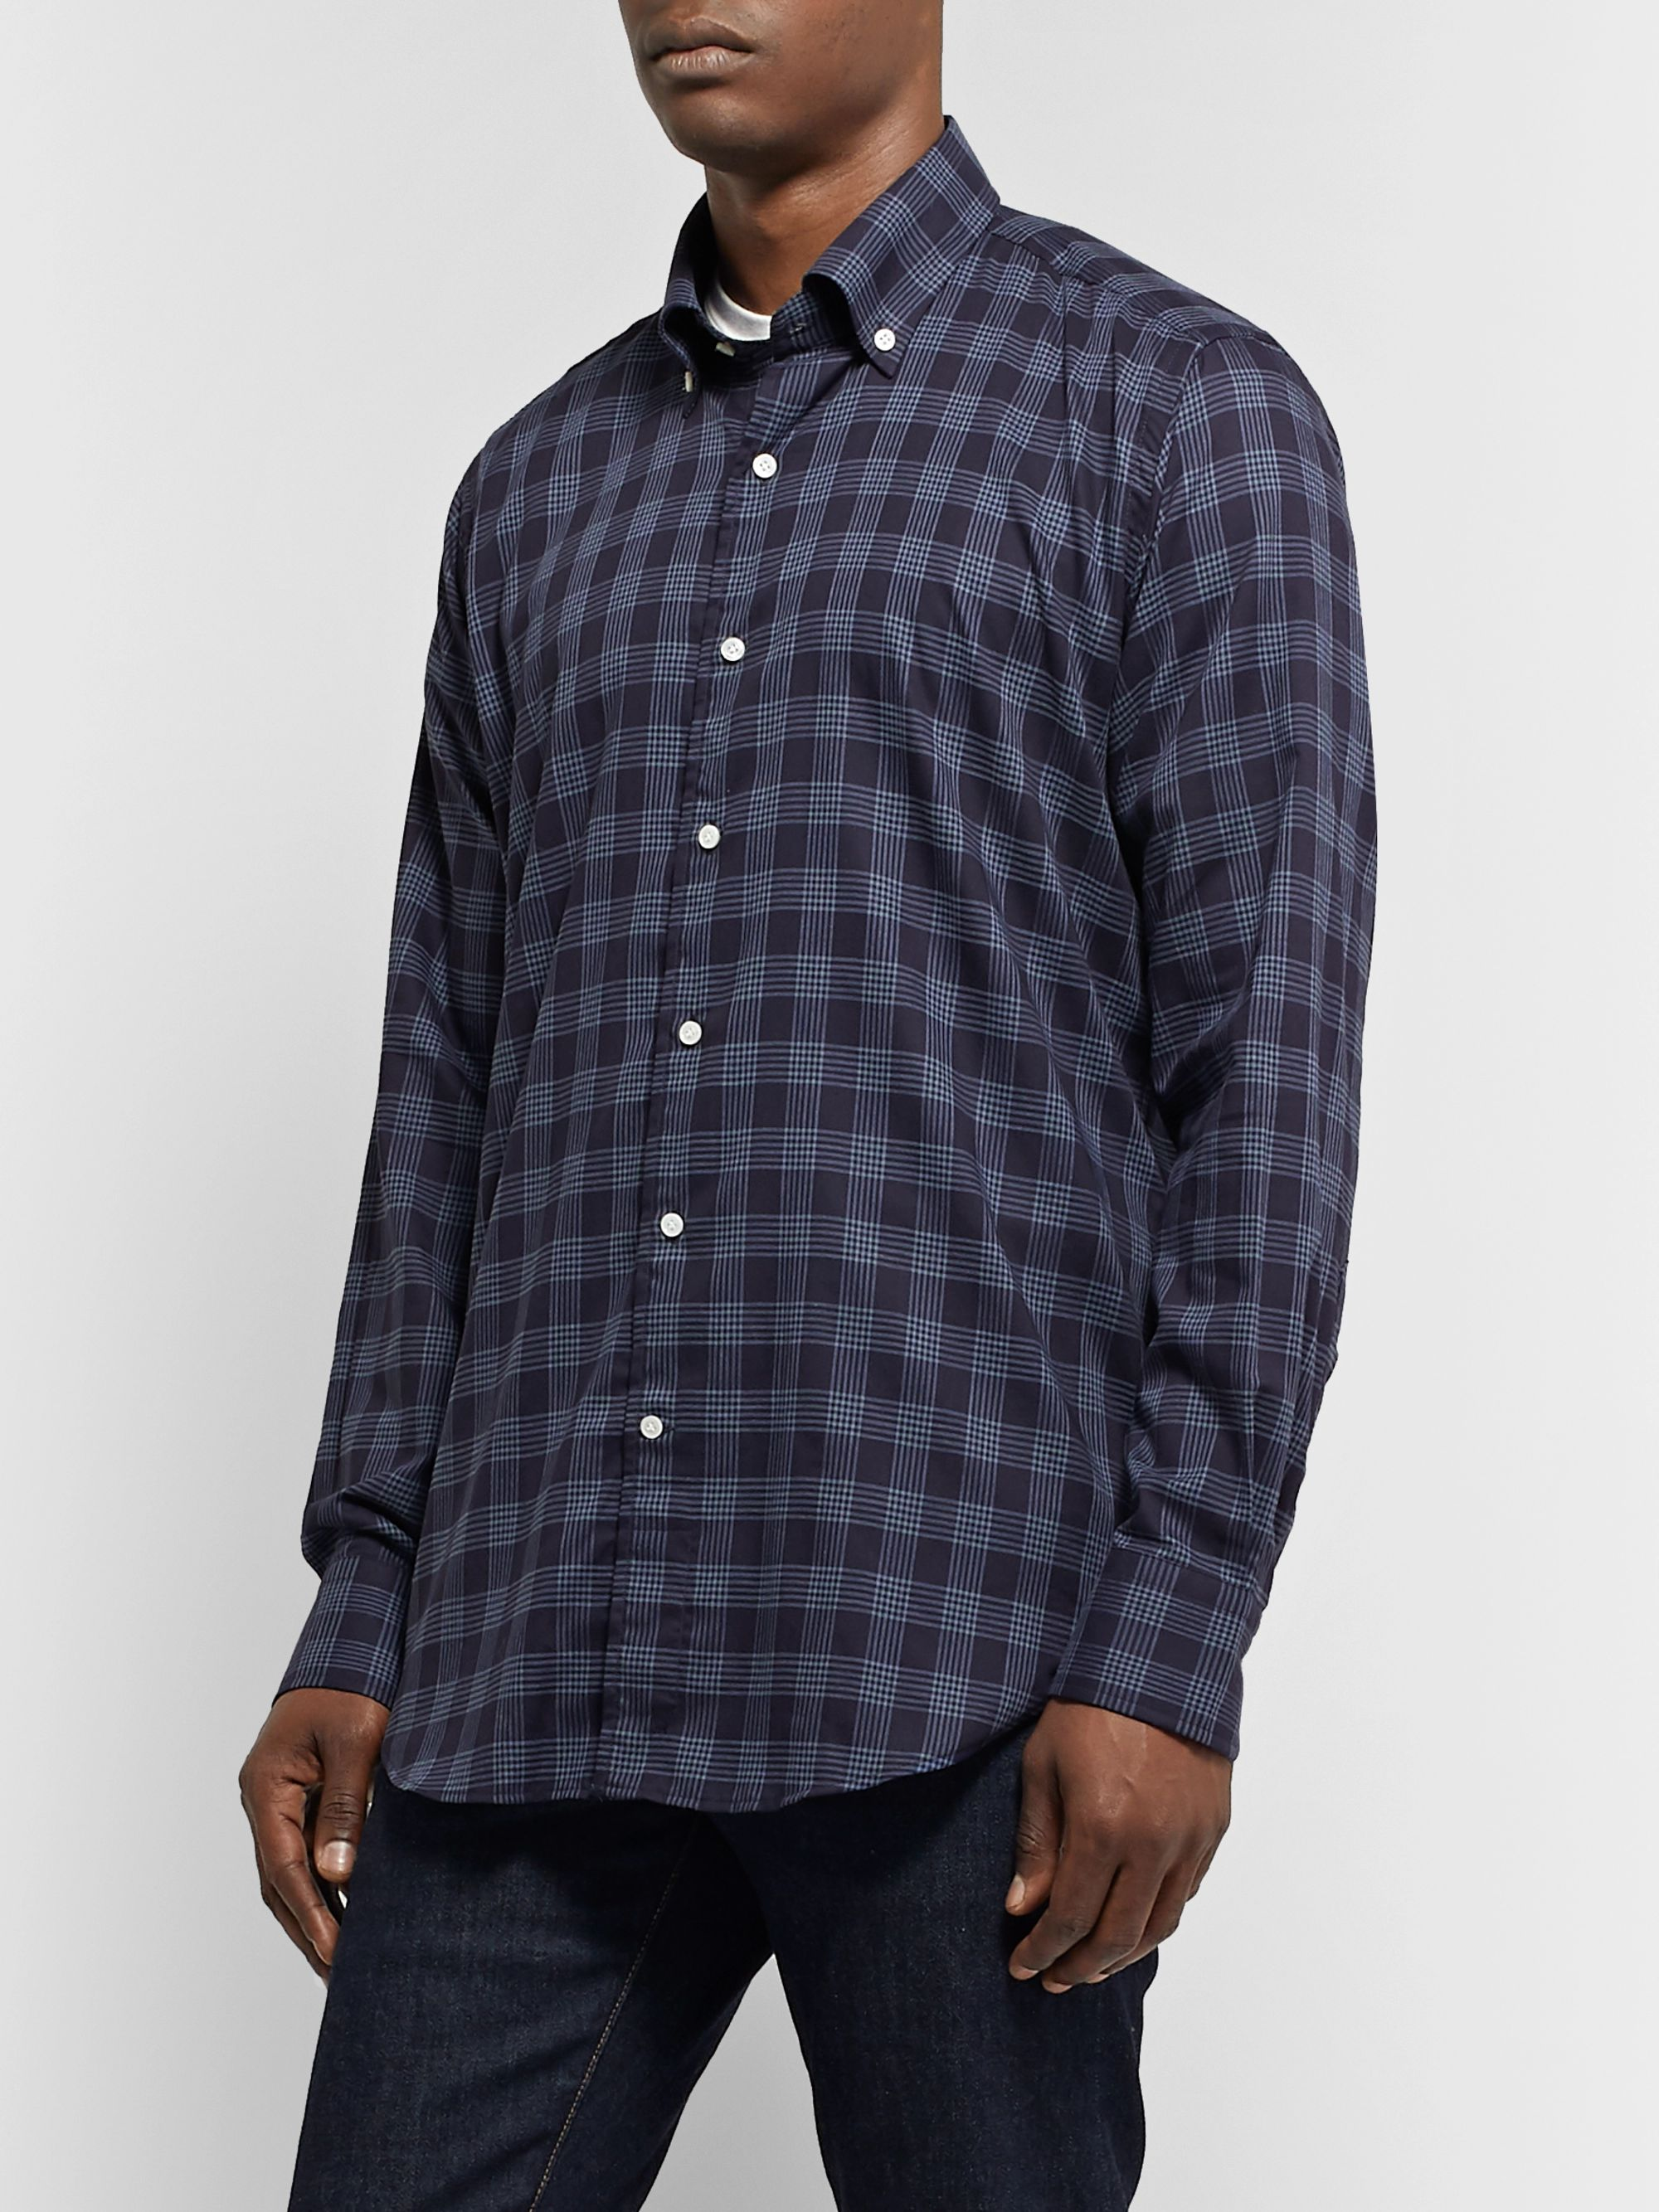 Peter Millar Reigns Button-Down Collar Checked Cotton Shirt